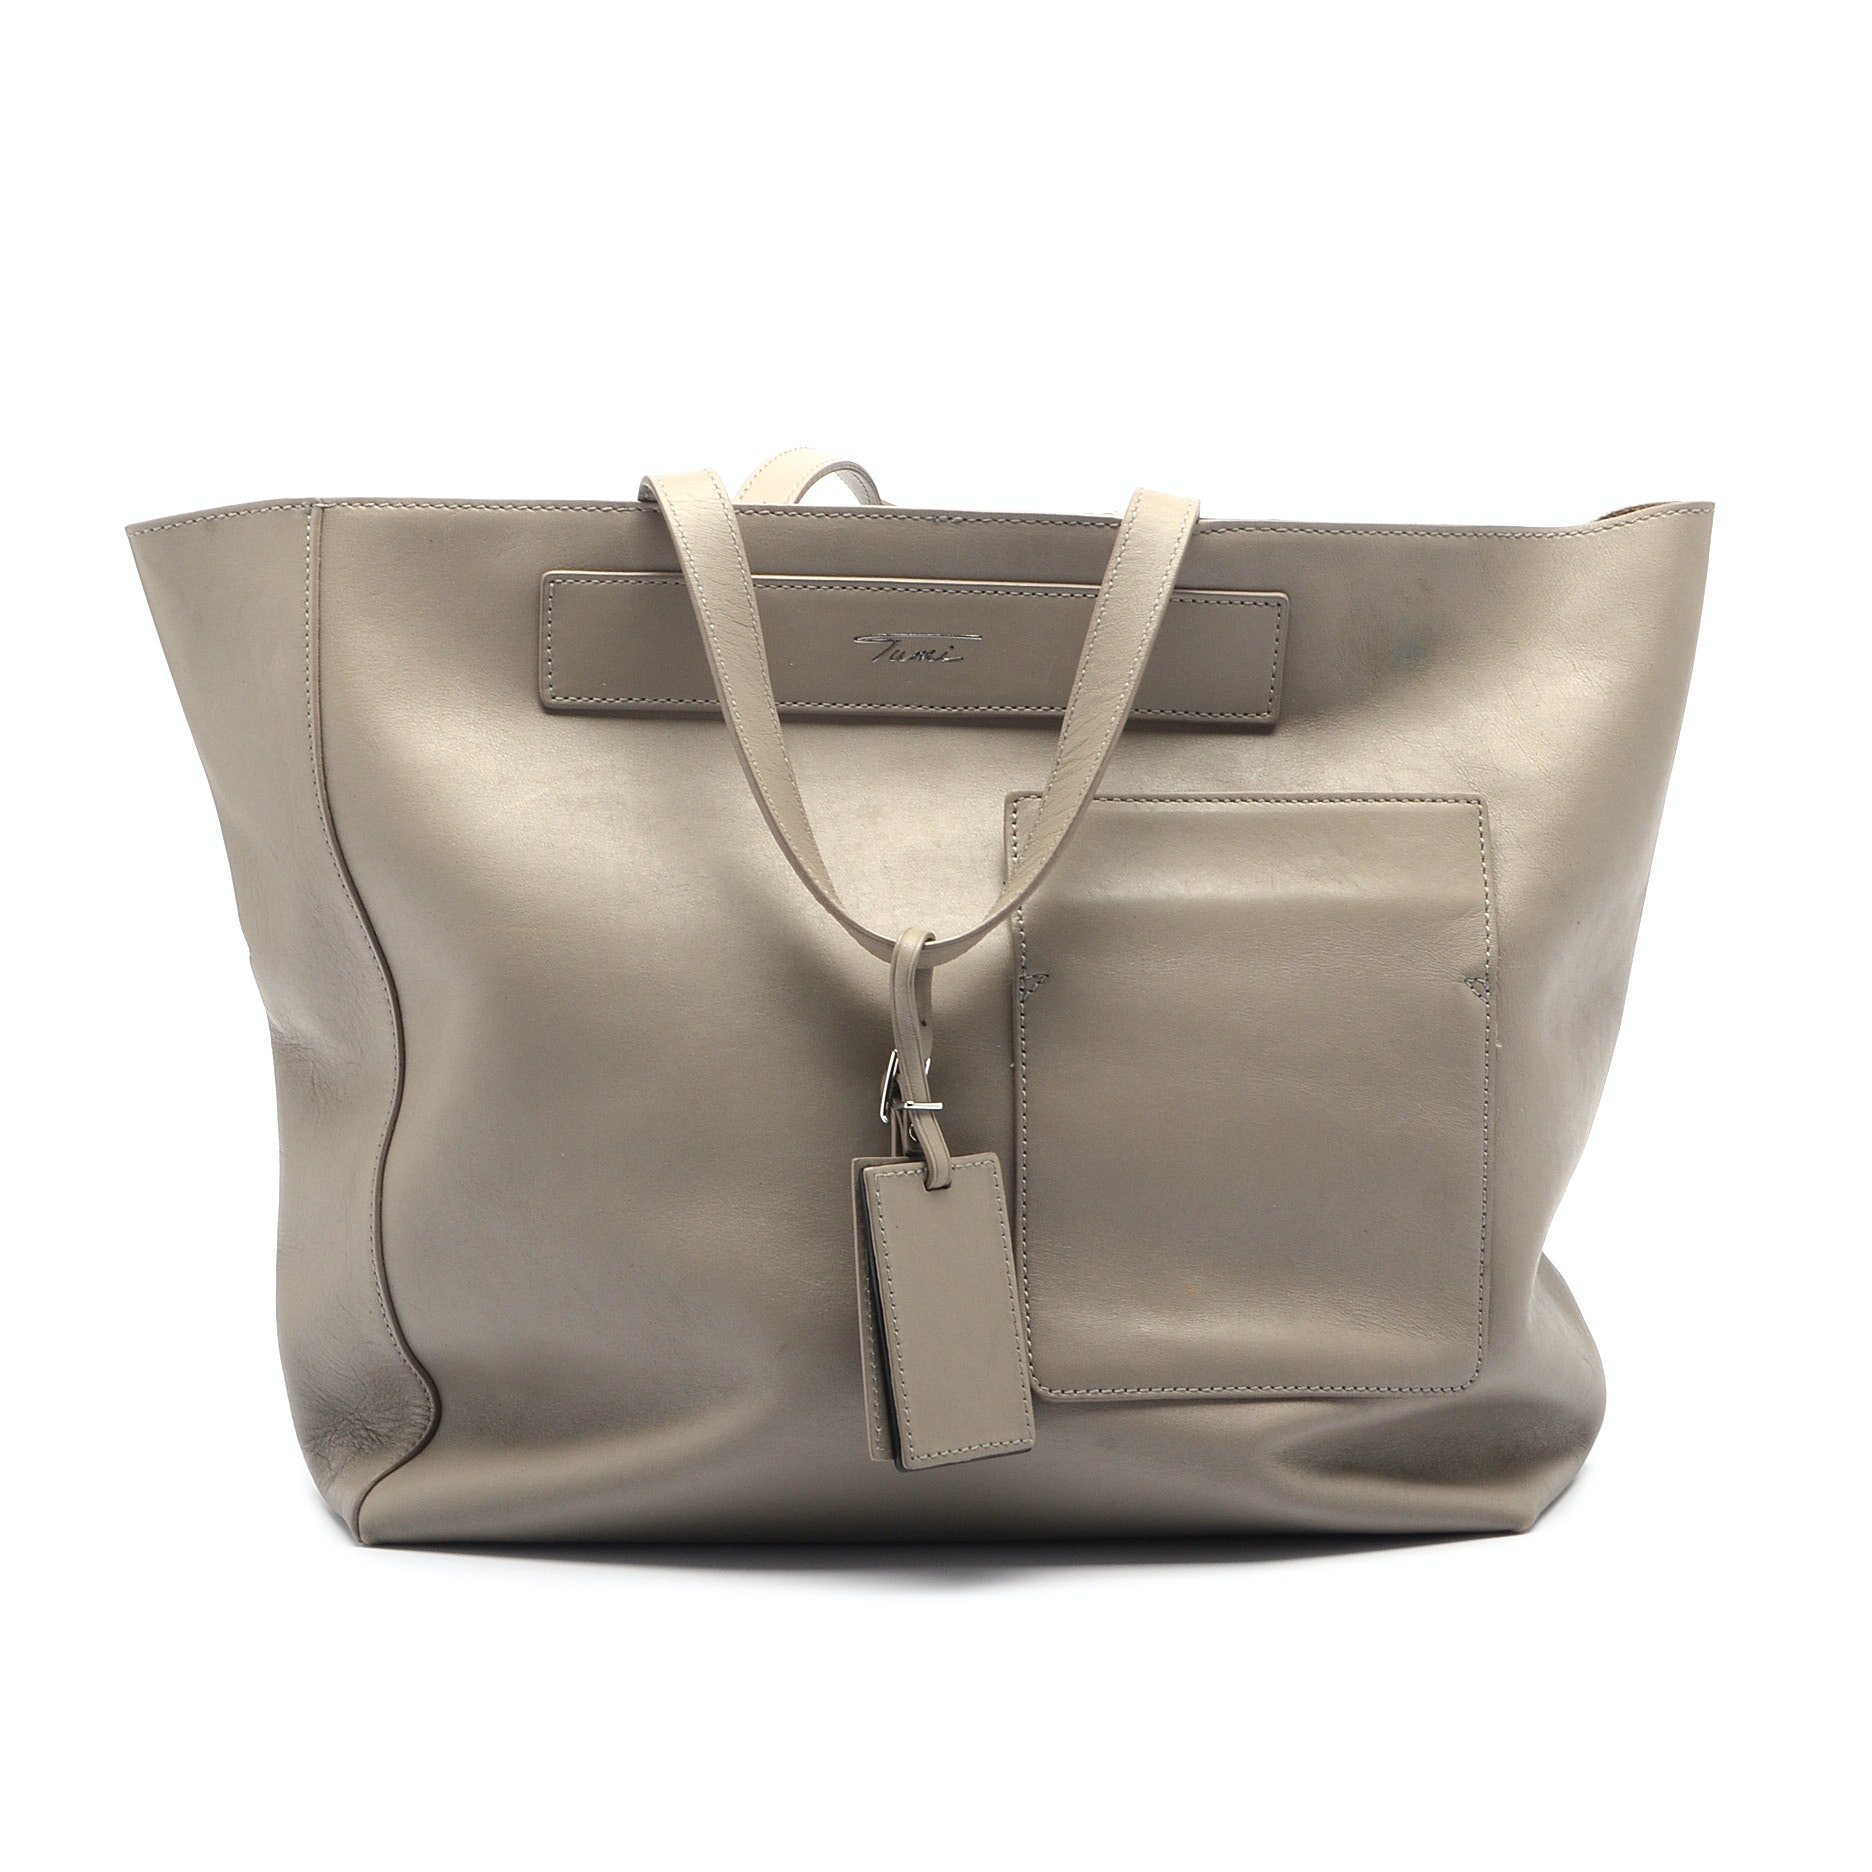 Tumi Tote Bag with Attached Pouch